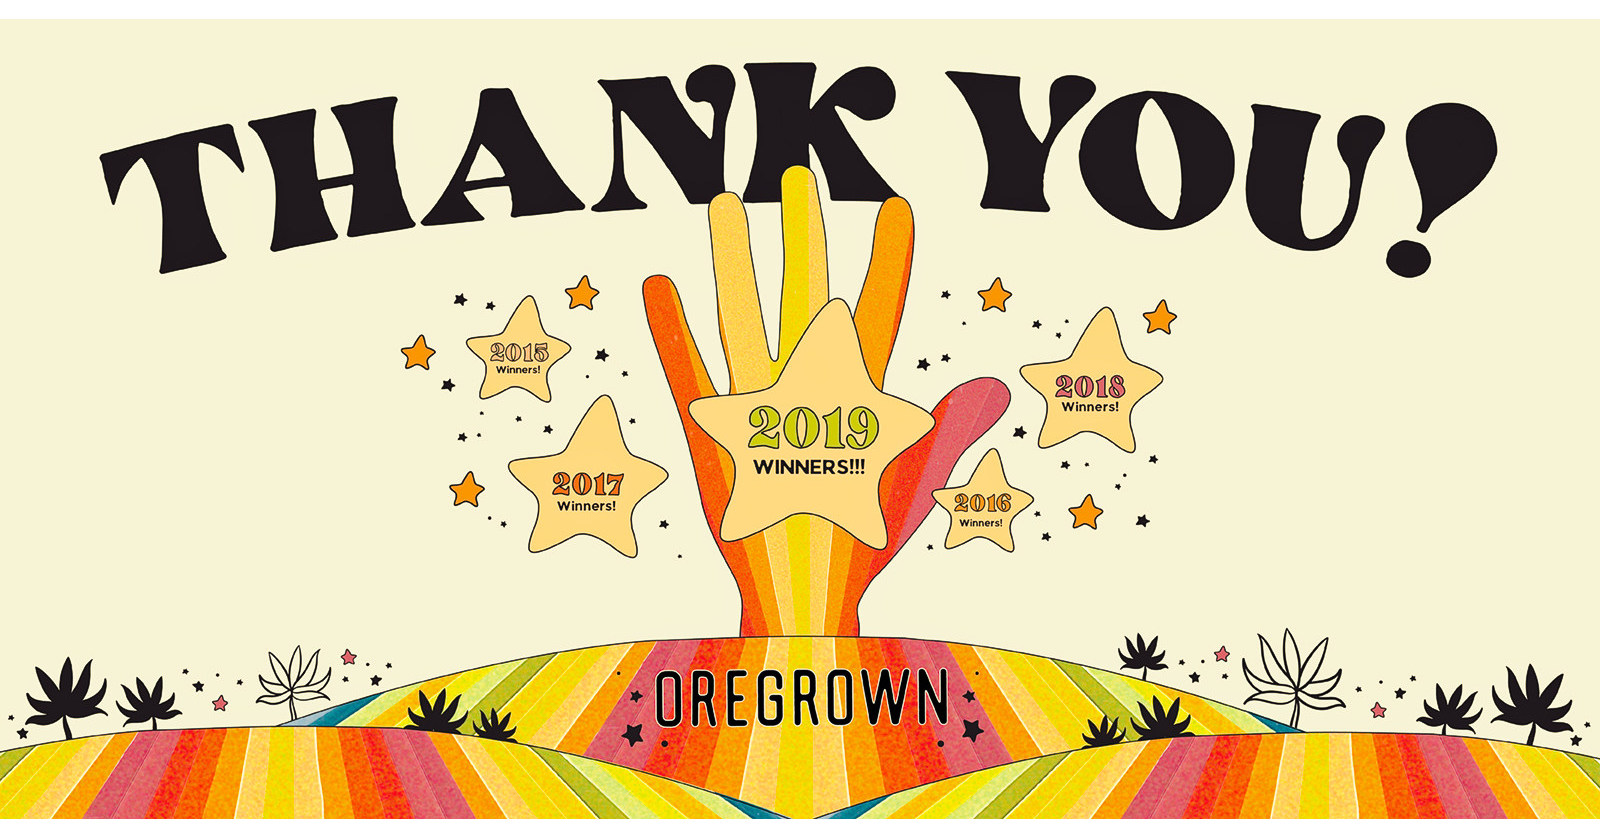 Oregrown™ Wins Award for Best Dispensary for Fifth Year in a